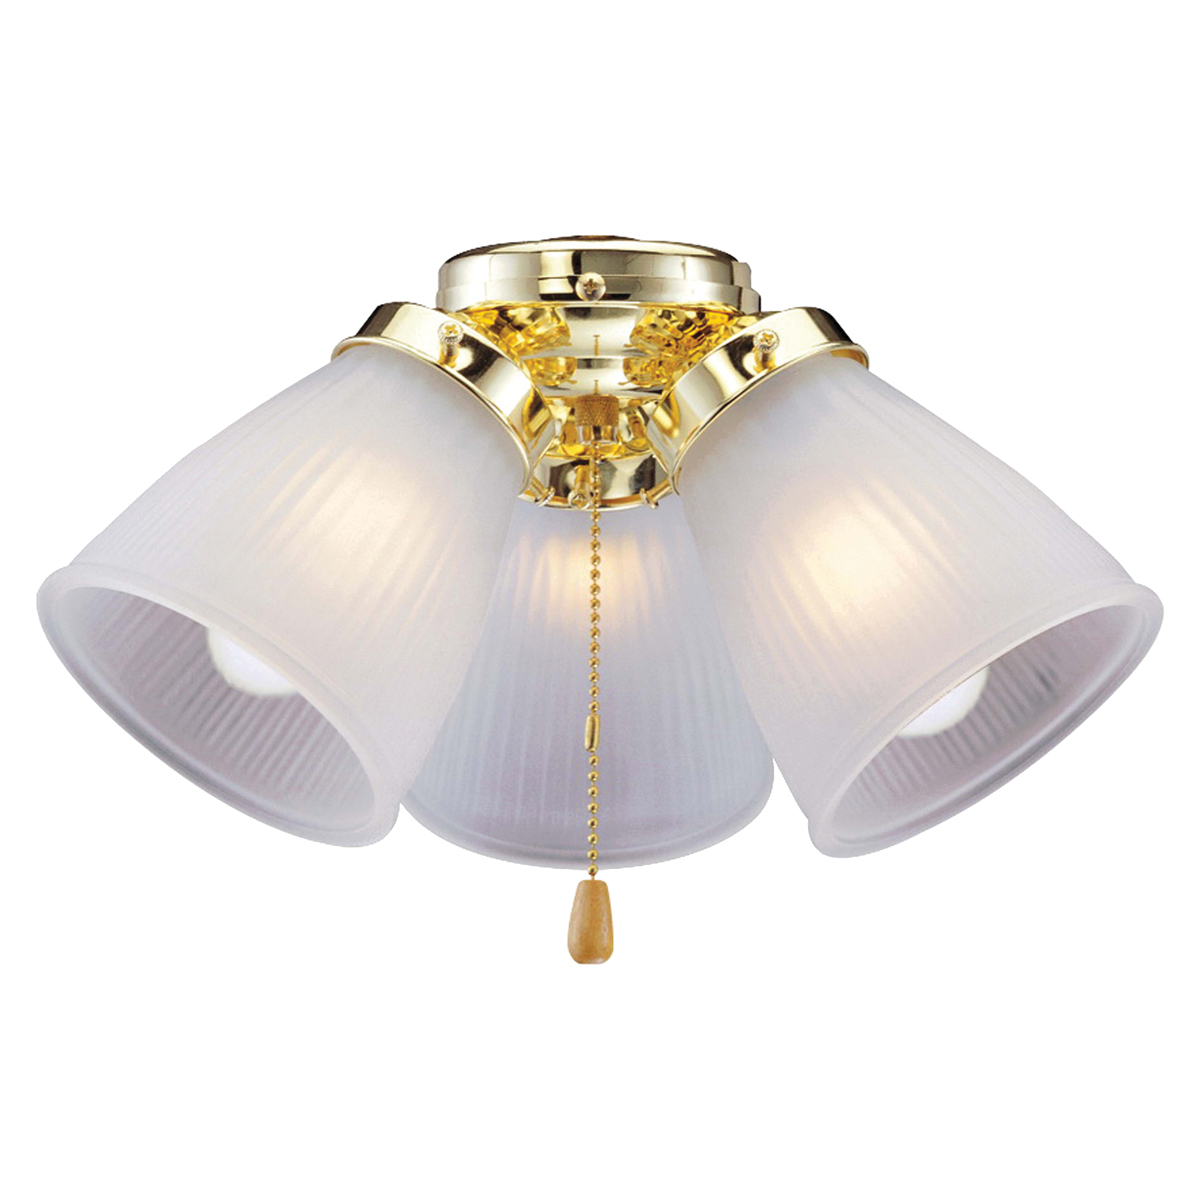 Picture of Boston Harbor CF-3FLK-PB Ceiling Fan Light Kit, Frosted Glass, Polished Brass, Polished Brass, Color Box